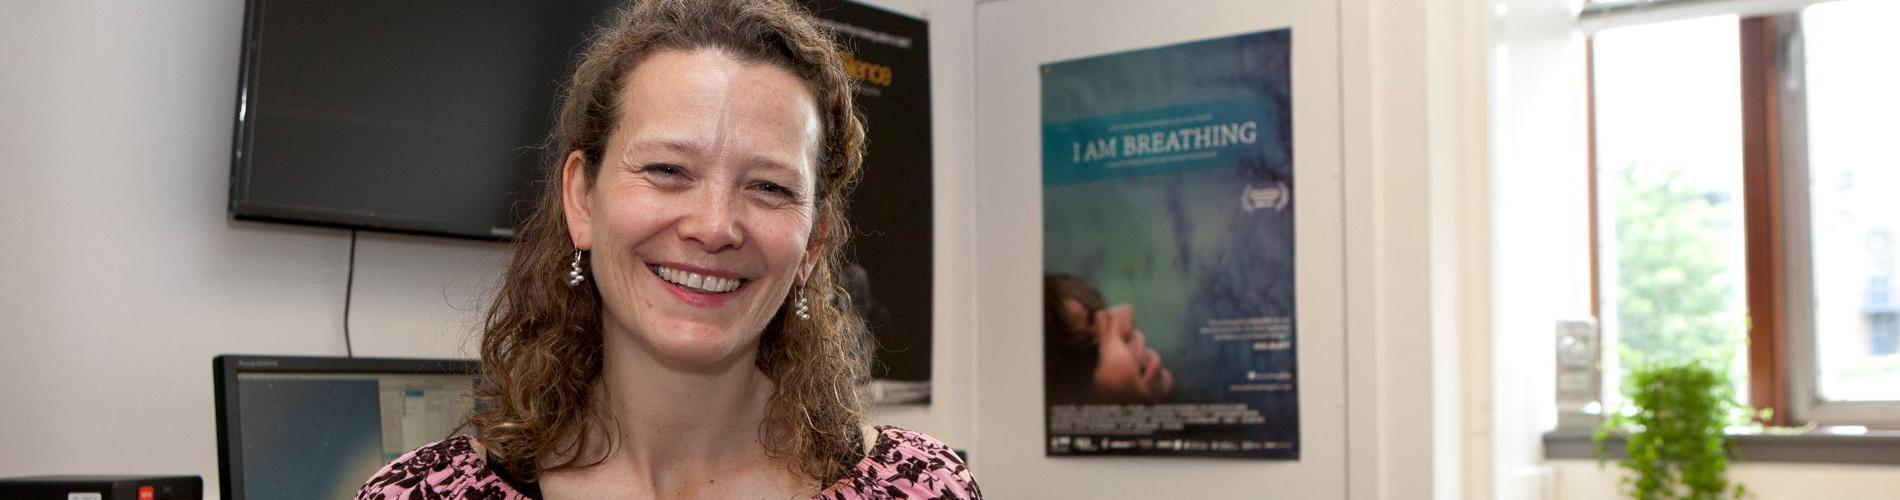 Emma Davie, co-director of the documentary I Am Breathing.